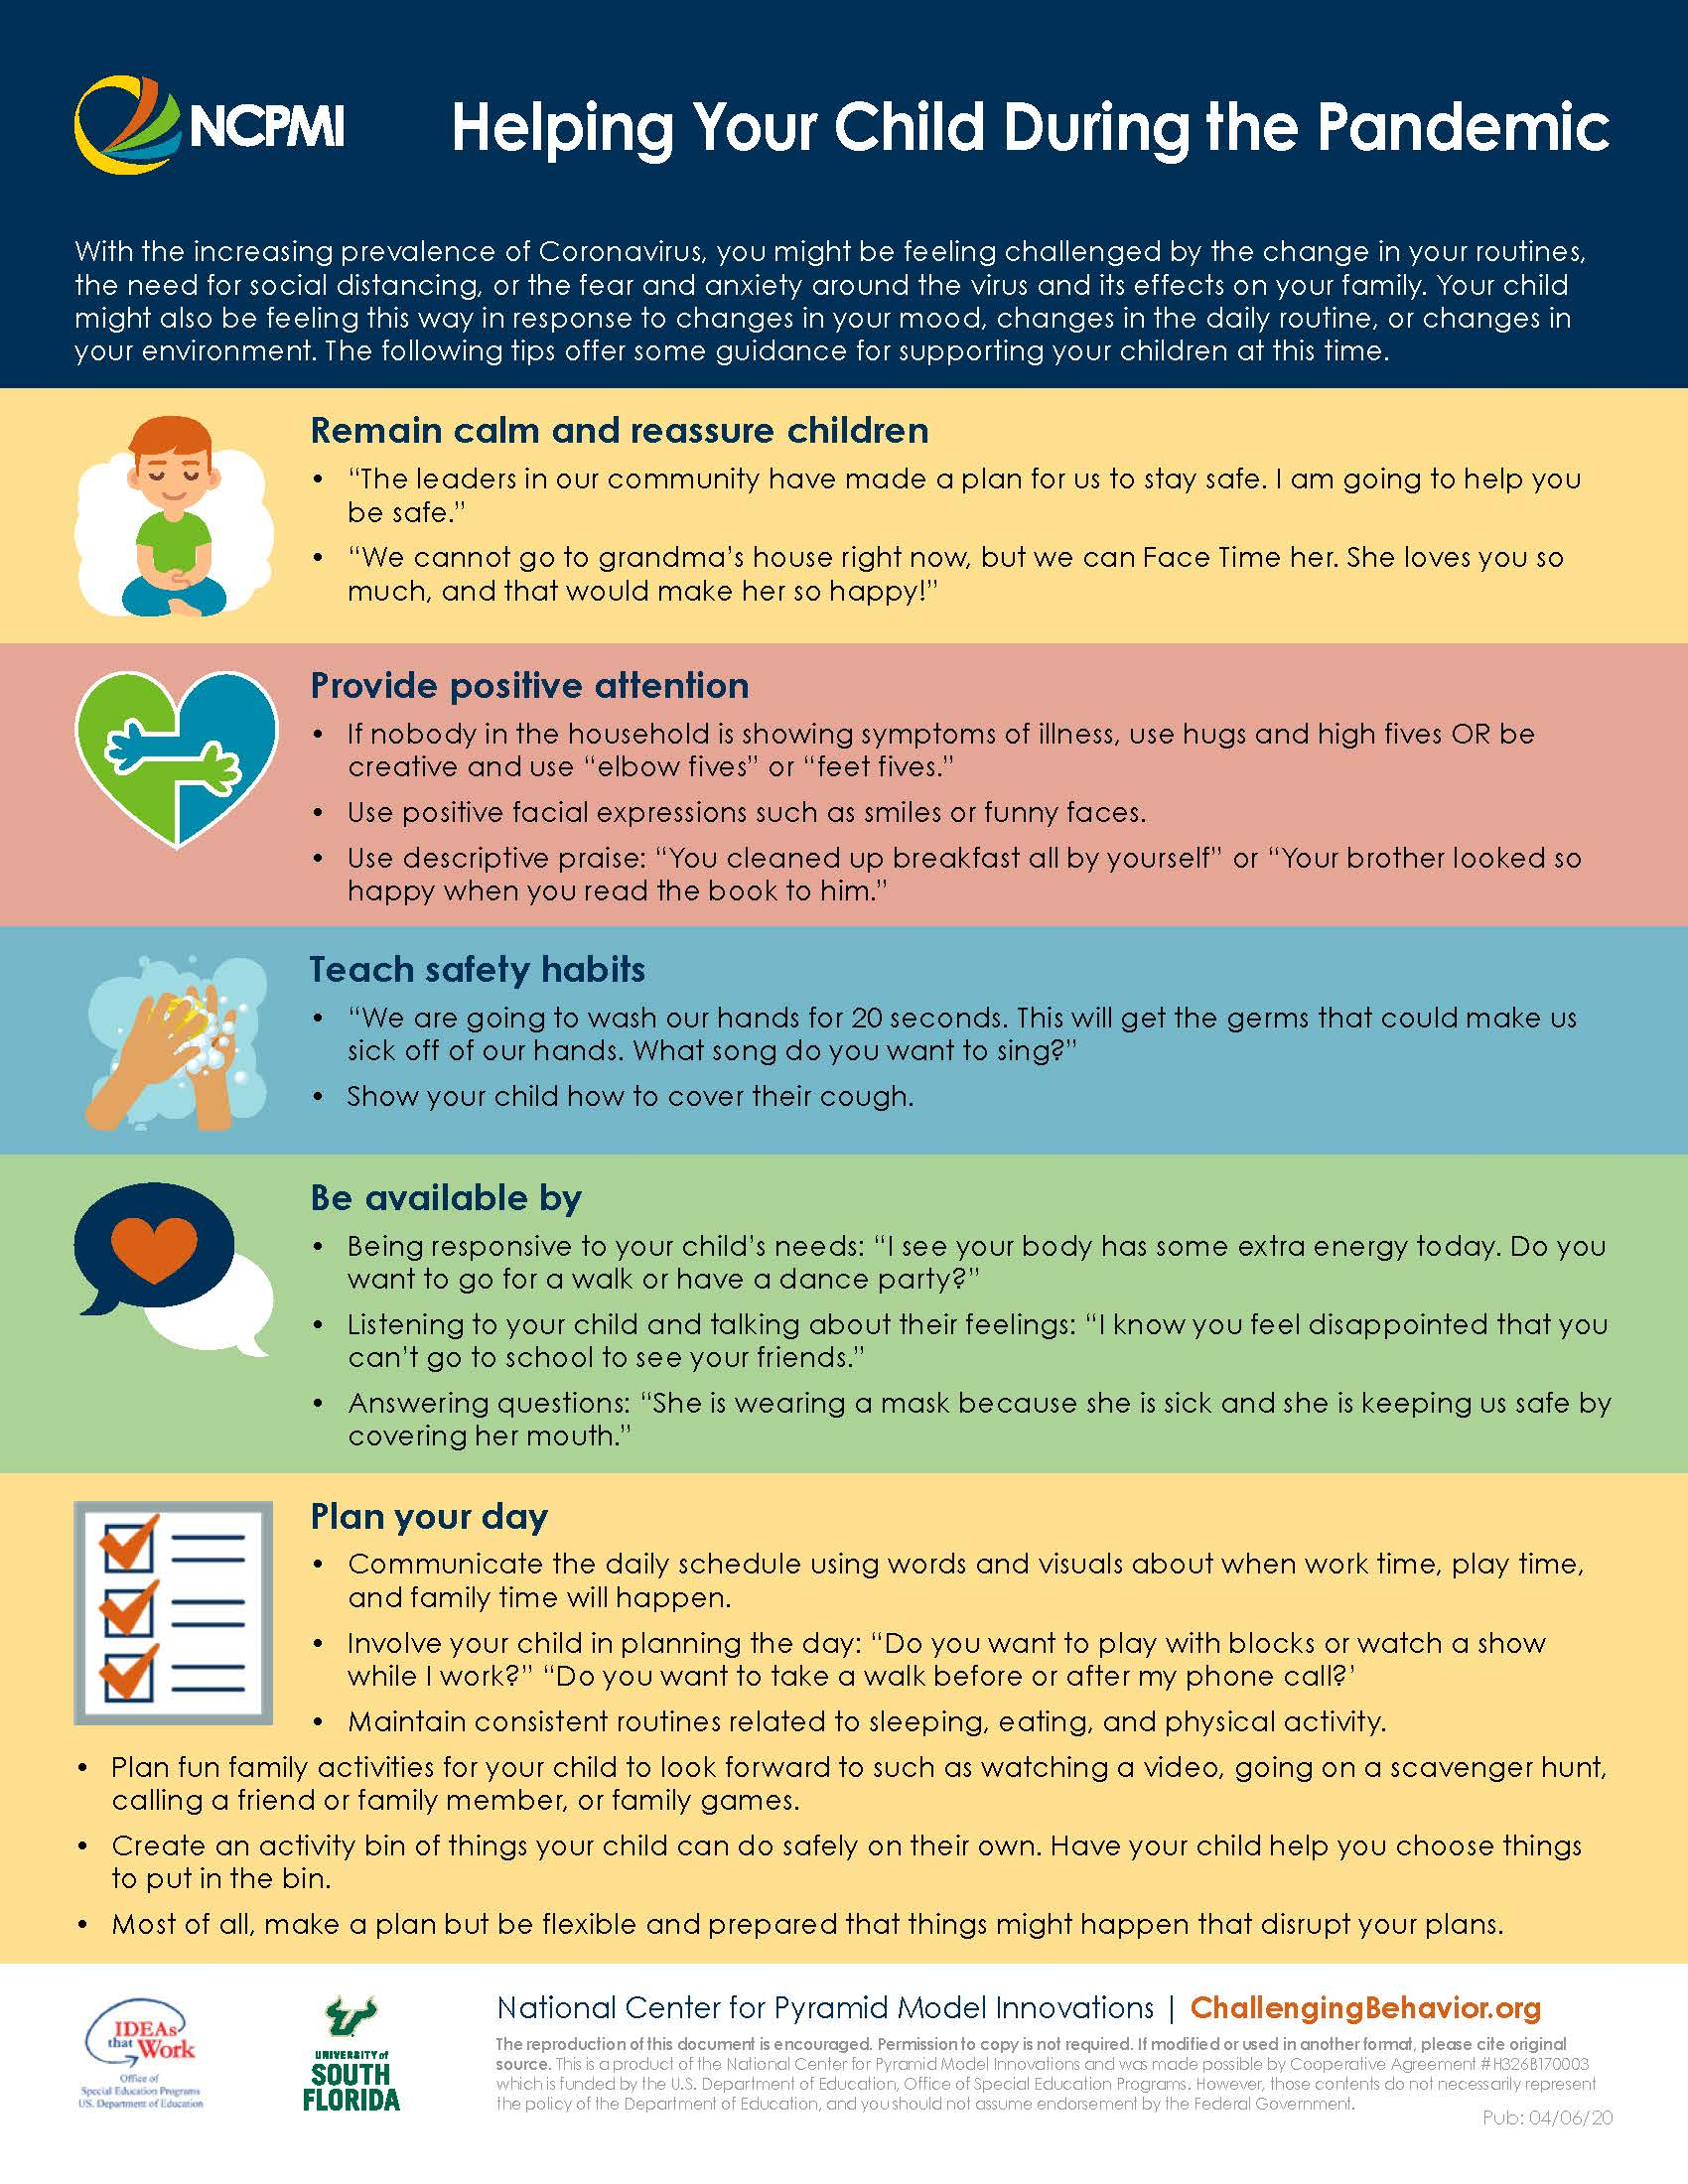 Tips for Helping Your Child During the Pandemic Image